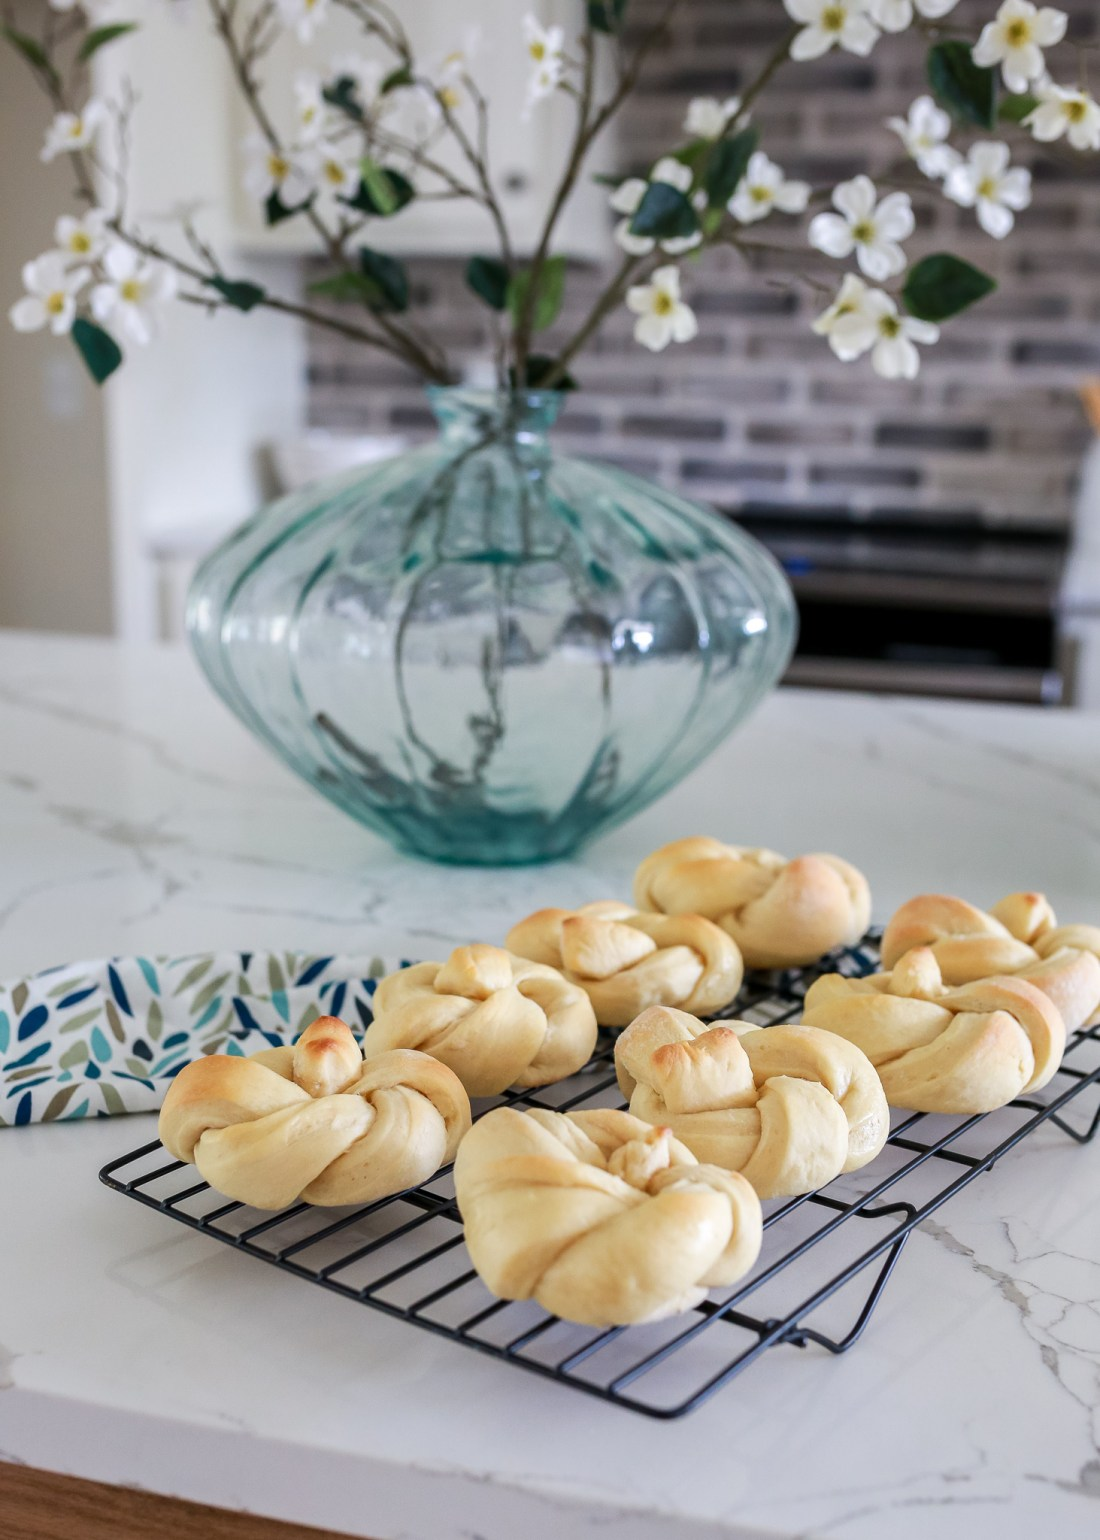 Beautiful and delicious recipe for light and fluffy butter rolls that are freezable! Freezer dinner rolls for ahead of time prep work.